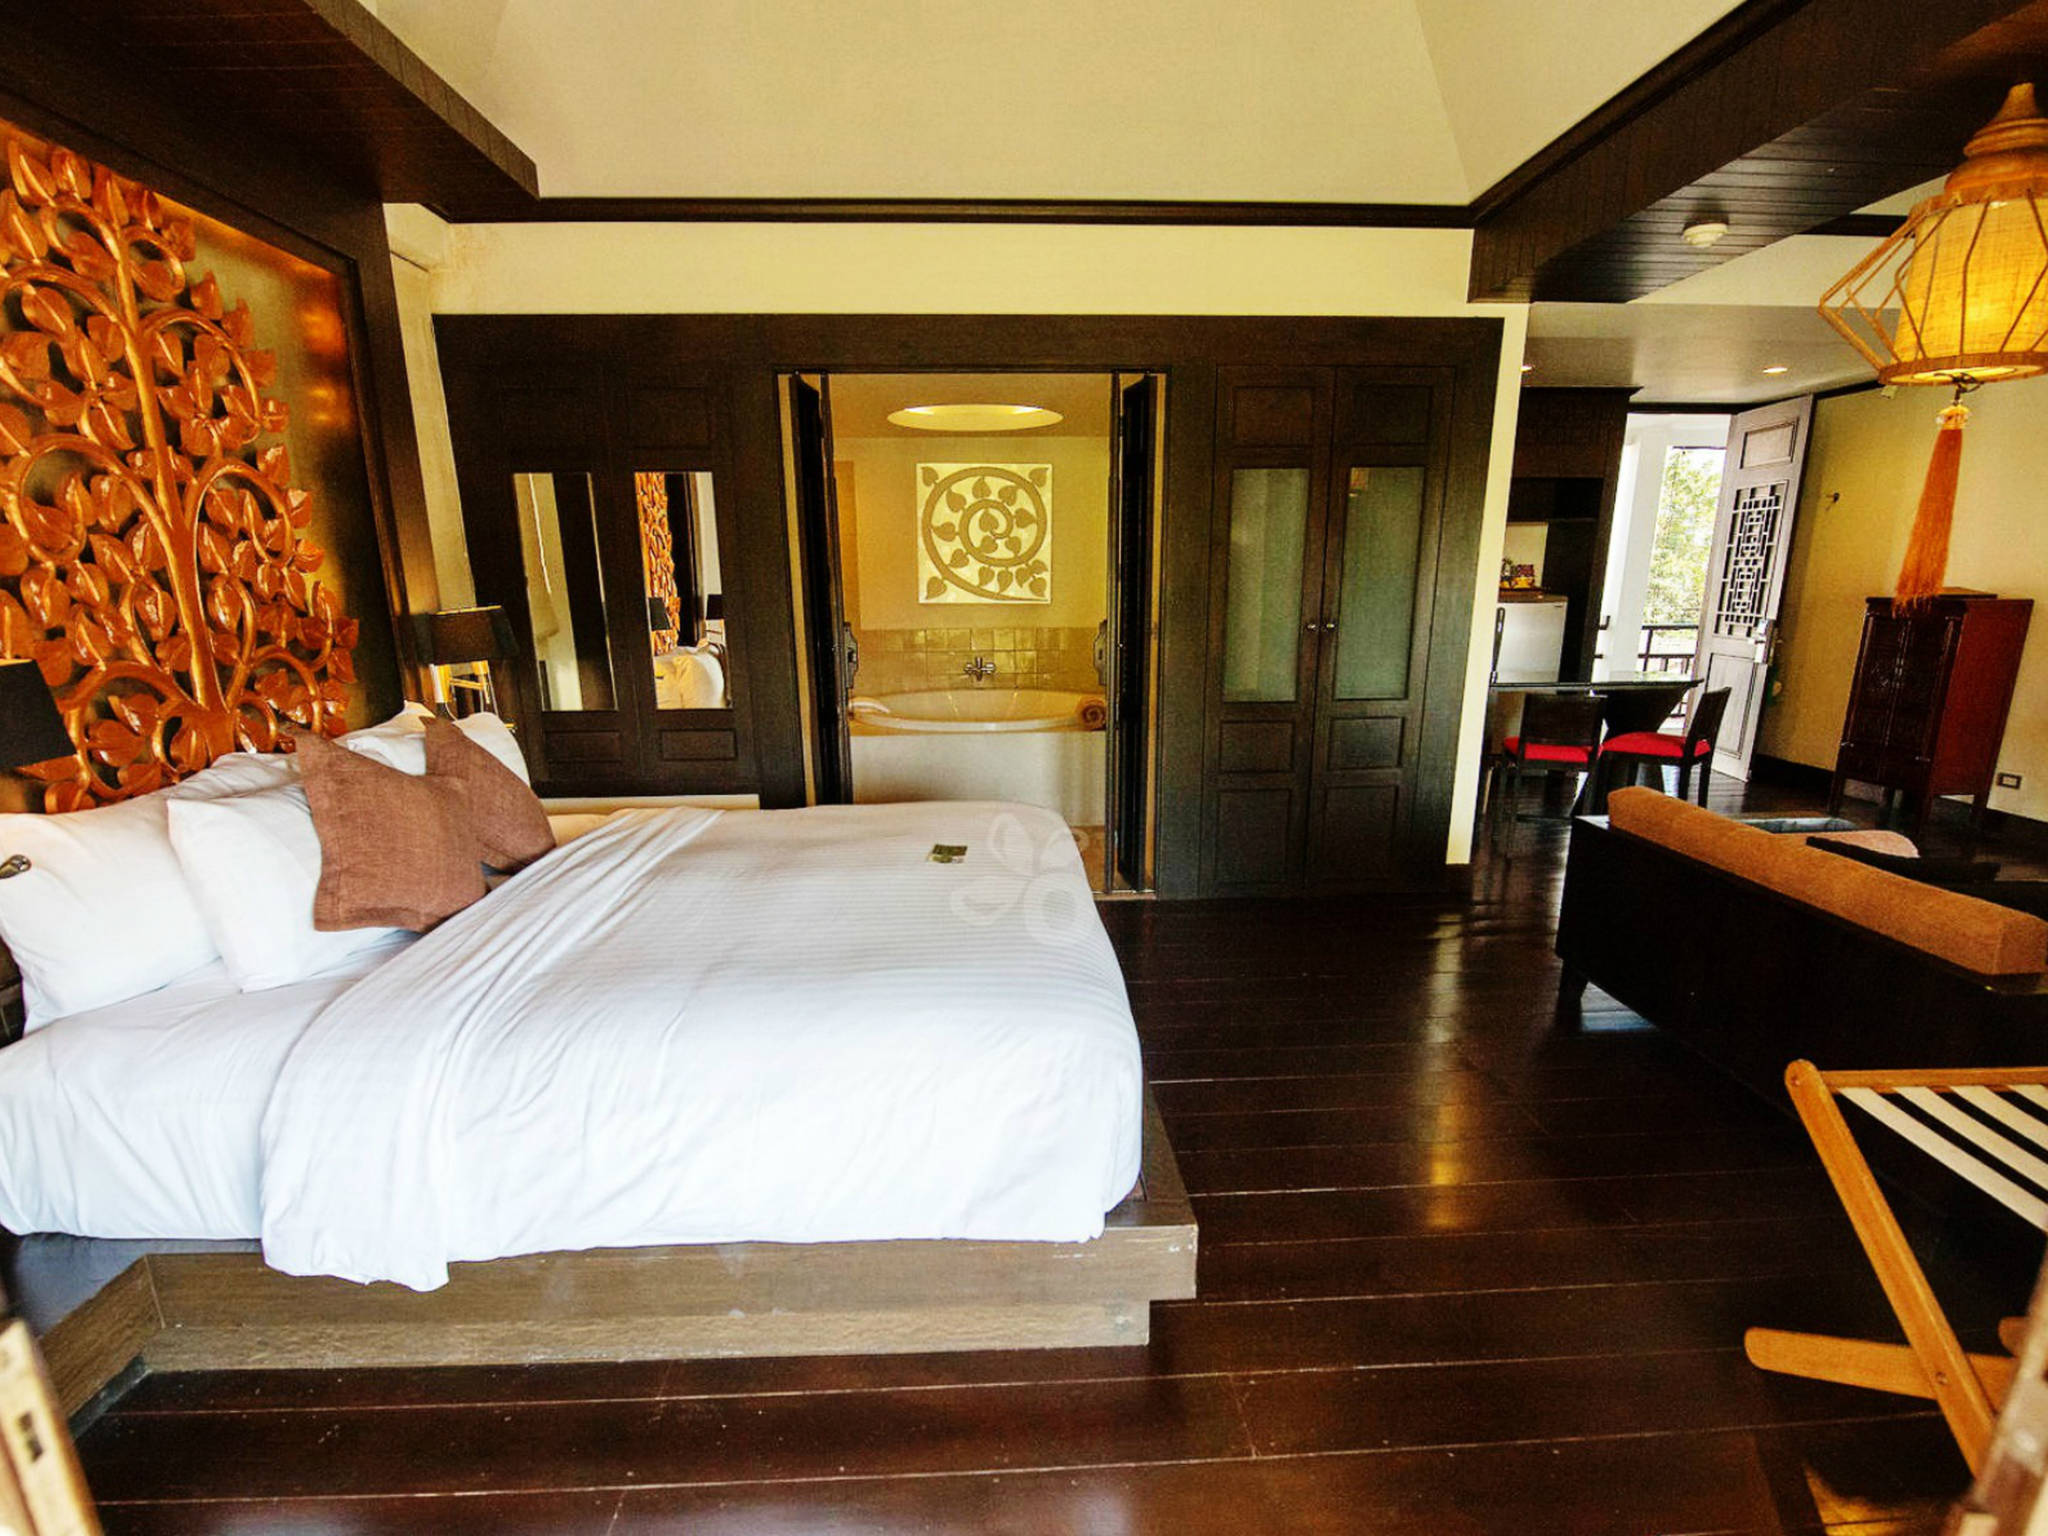 Rooms bodhi serene a boutique hotel